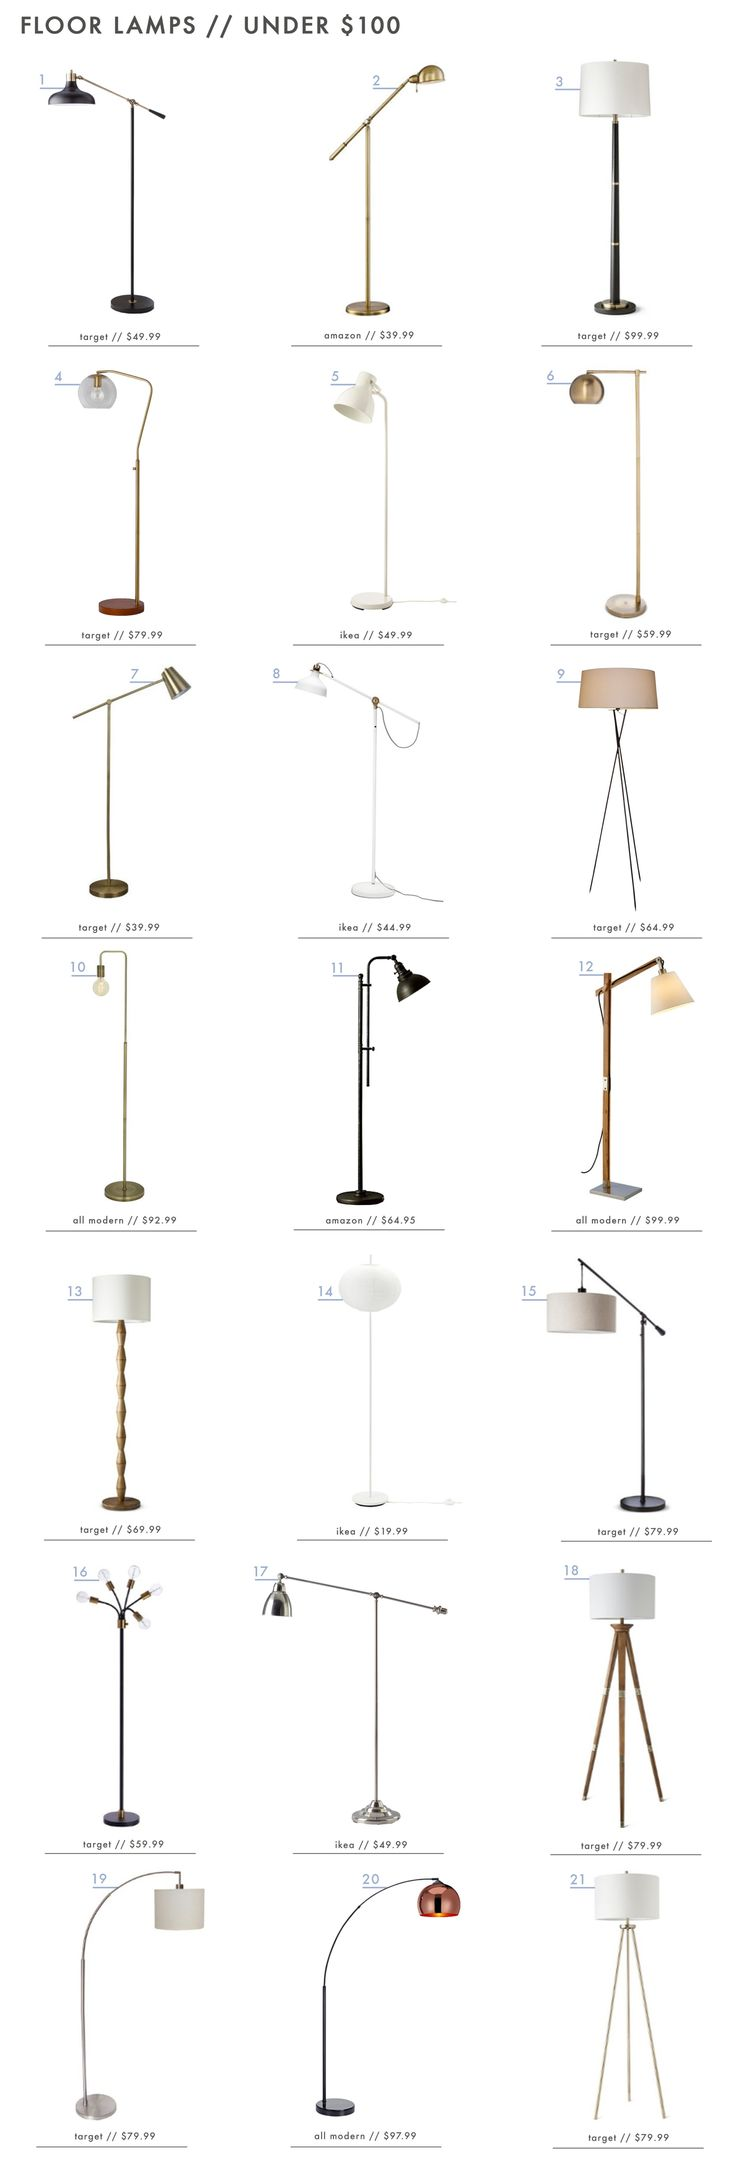 21 Awesome Floor Lamps under $100